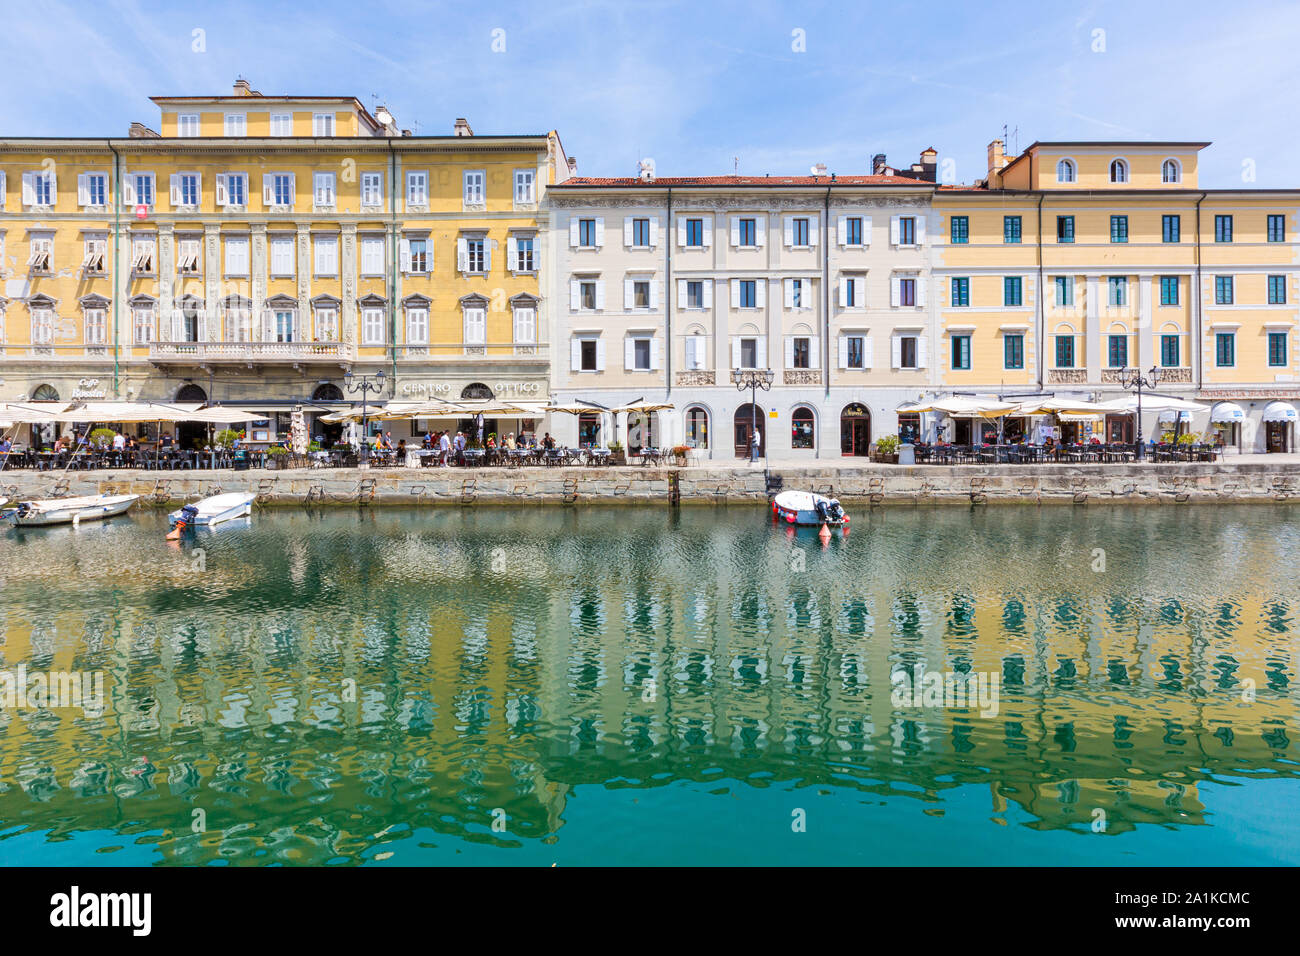 JULY 22, 2019 - TRIESTE, ITALY - Canal Grande, the Grand Canal, is a navigable canal that crosses the historical center of Trieste and reaches the sea Stock Photo